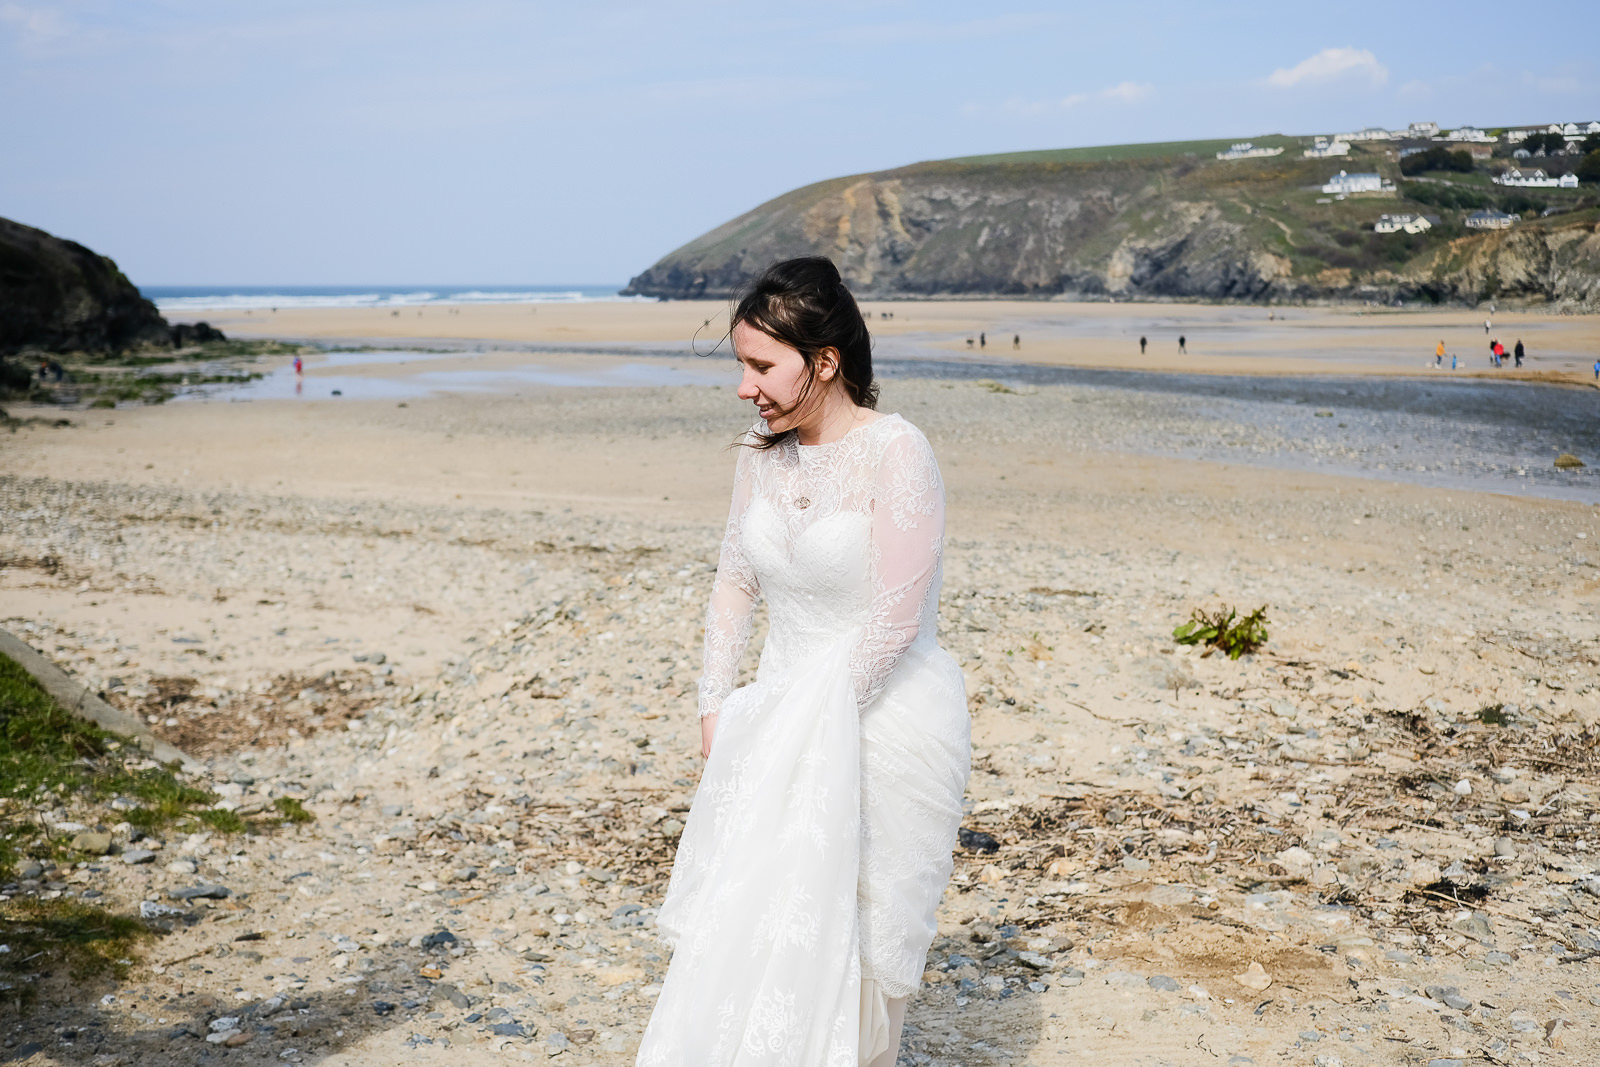 Retorrick Mill Newquay wedding 057.jpg